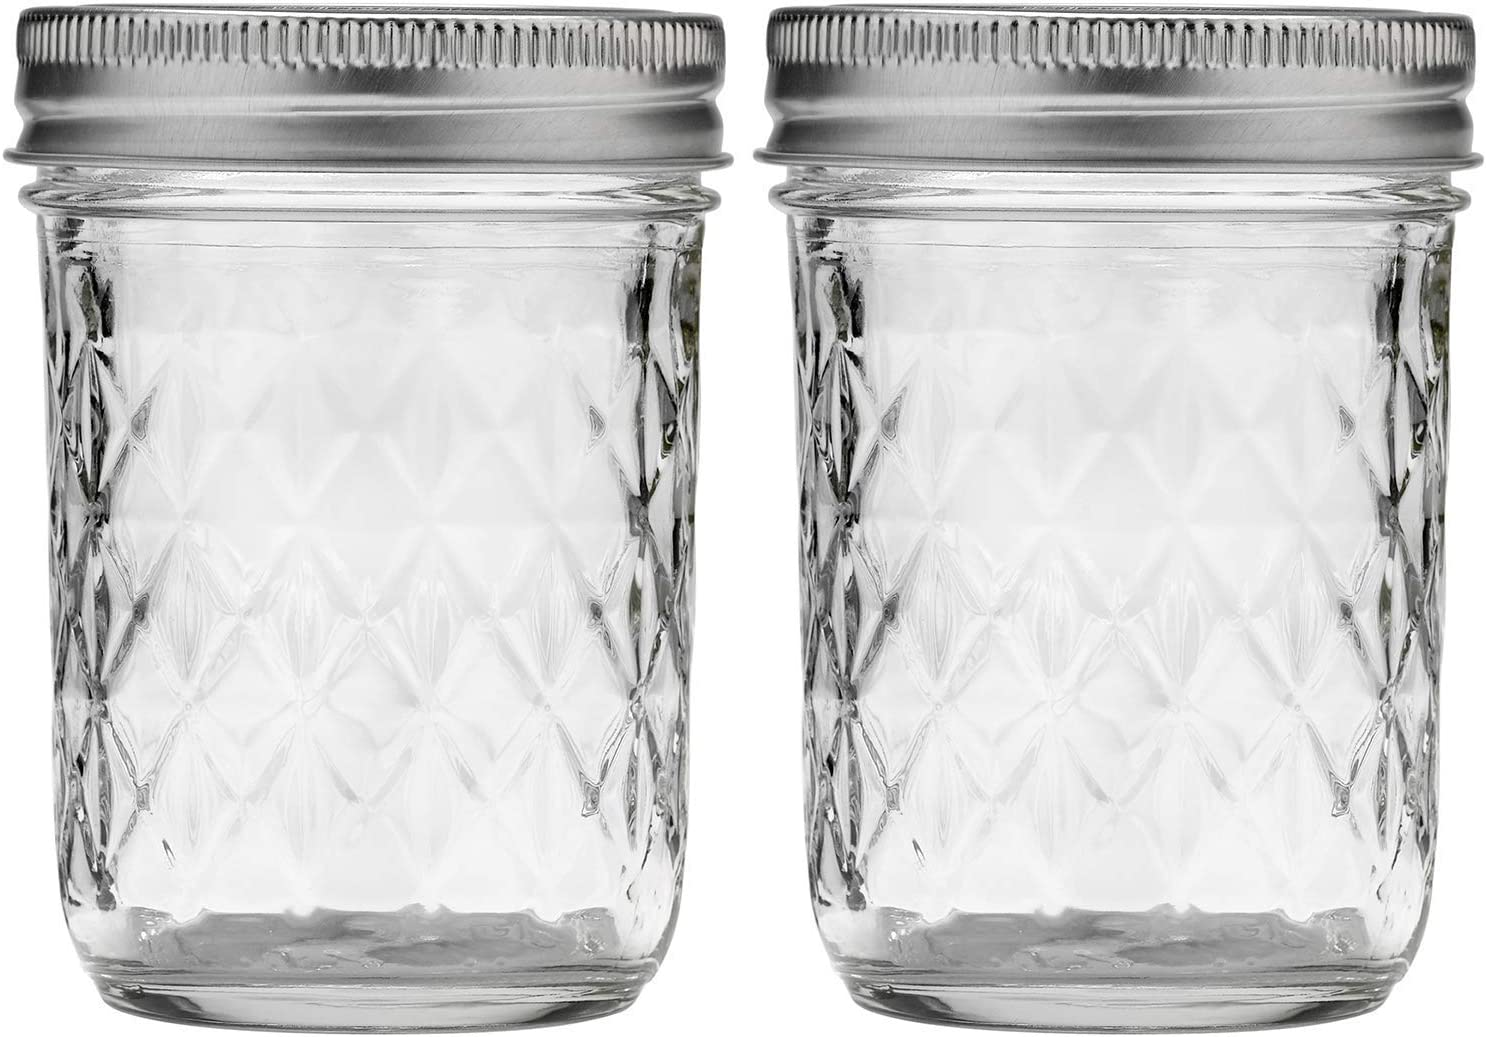 Ball Quilted Crystal Regular Mouth 8 oz Jelly Mason Jars with Lids and Bands (Set of 2)